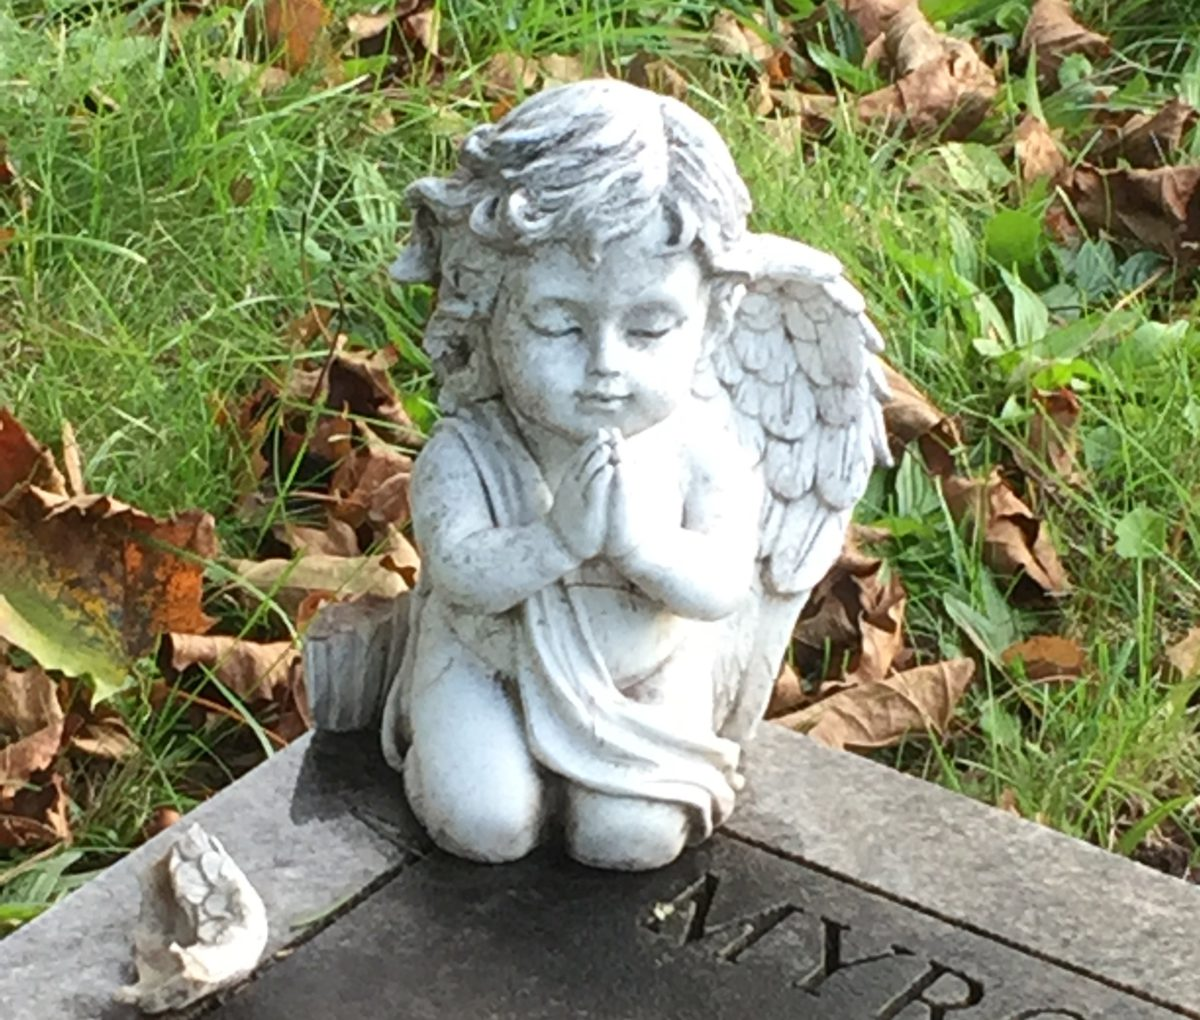 Angel with a broken wing